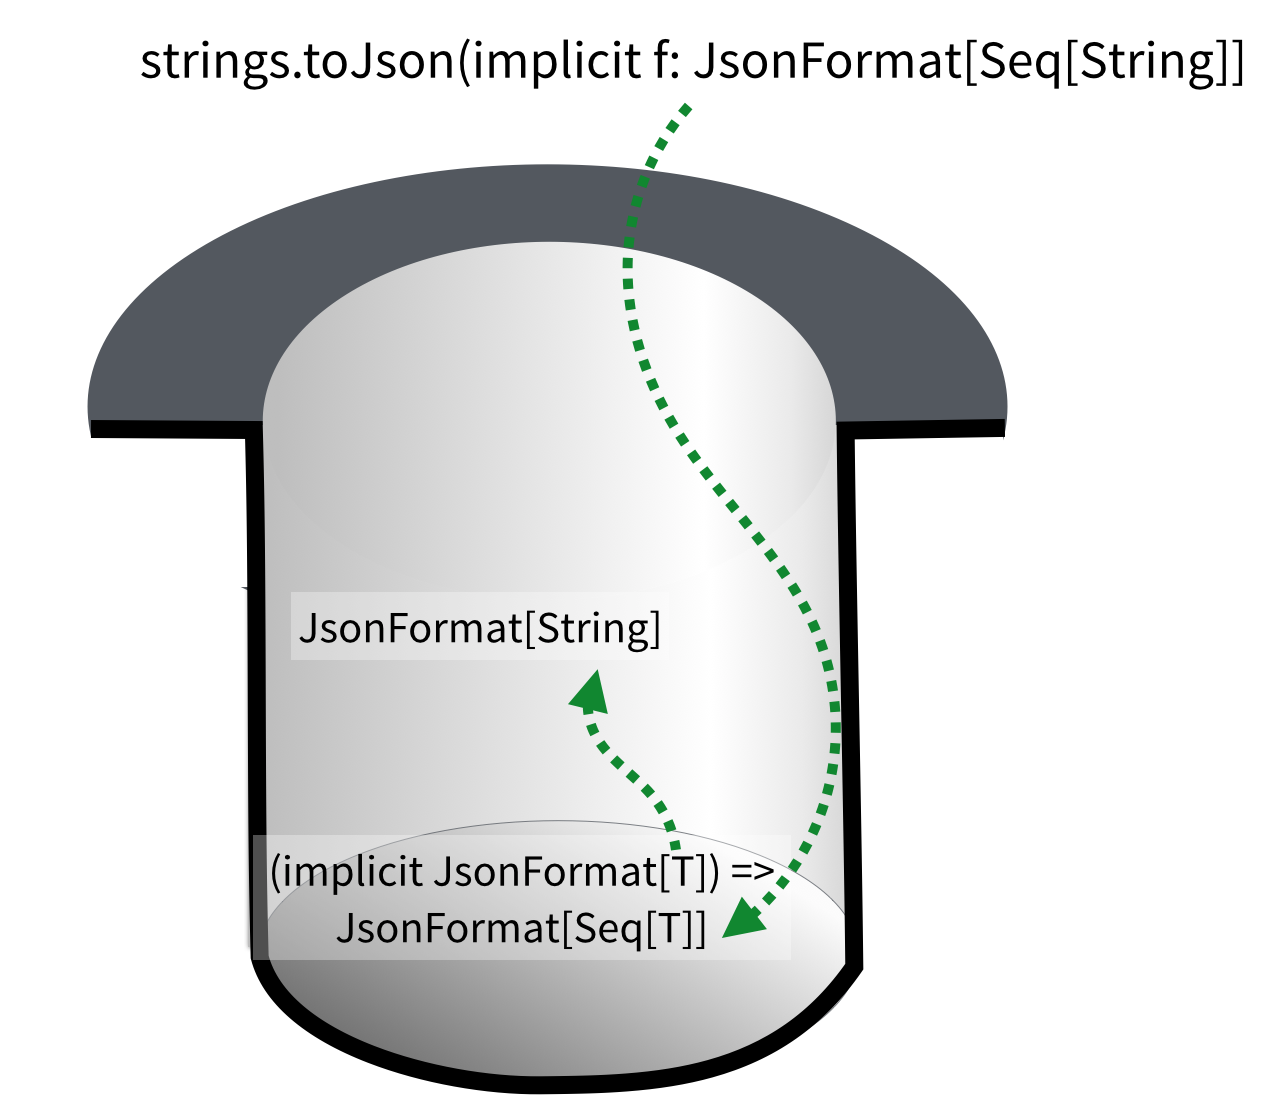 the magic hat: to satisfy the implicit parameter of type JsonFormat of Seq of T, the magic hat uses both these values